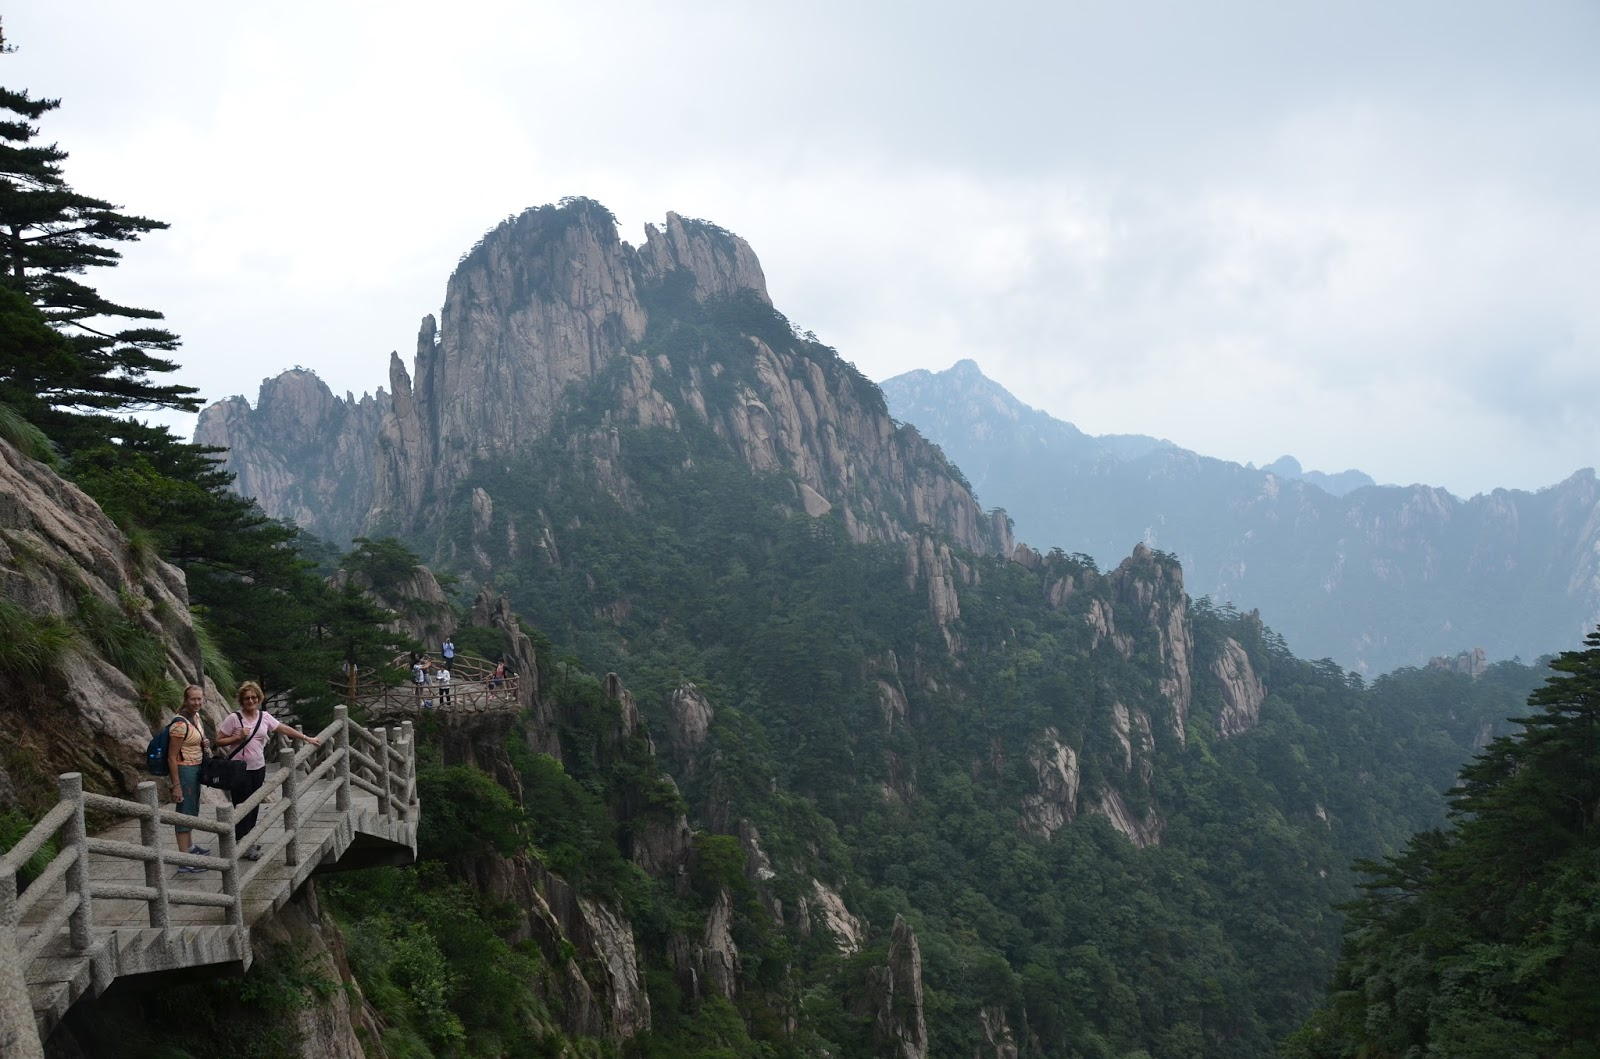 Ken and Jeanie Schneider's China Blog: Huangshan Mountain